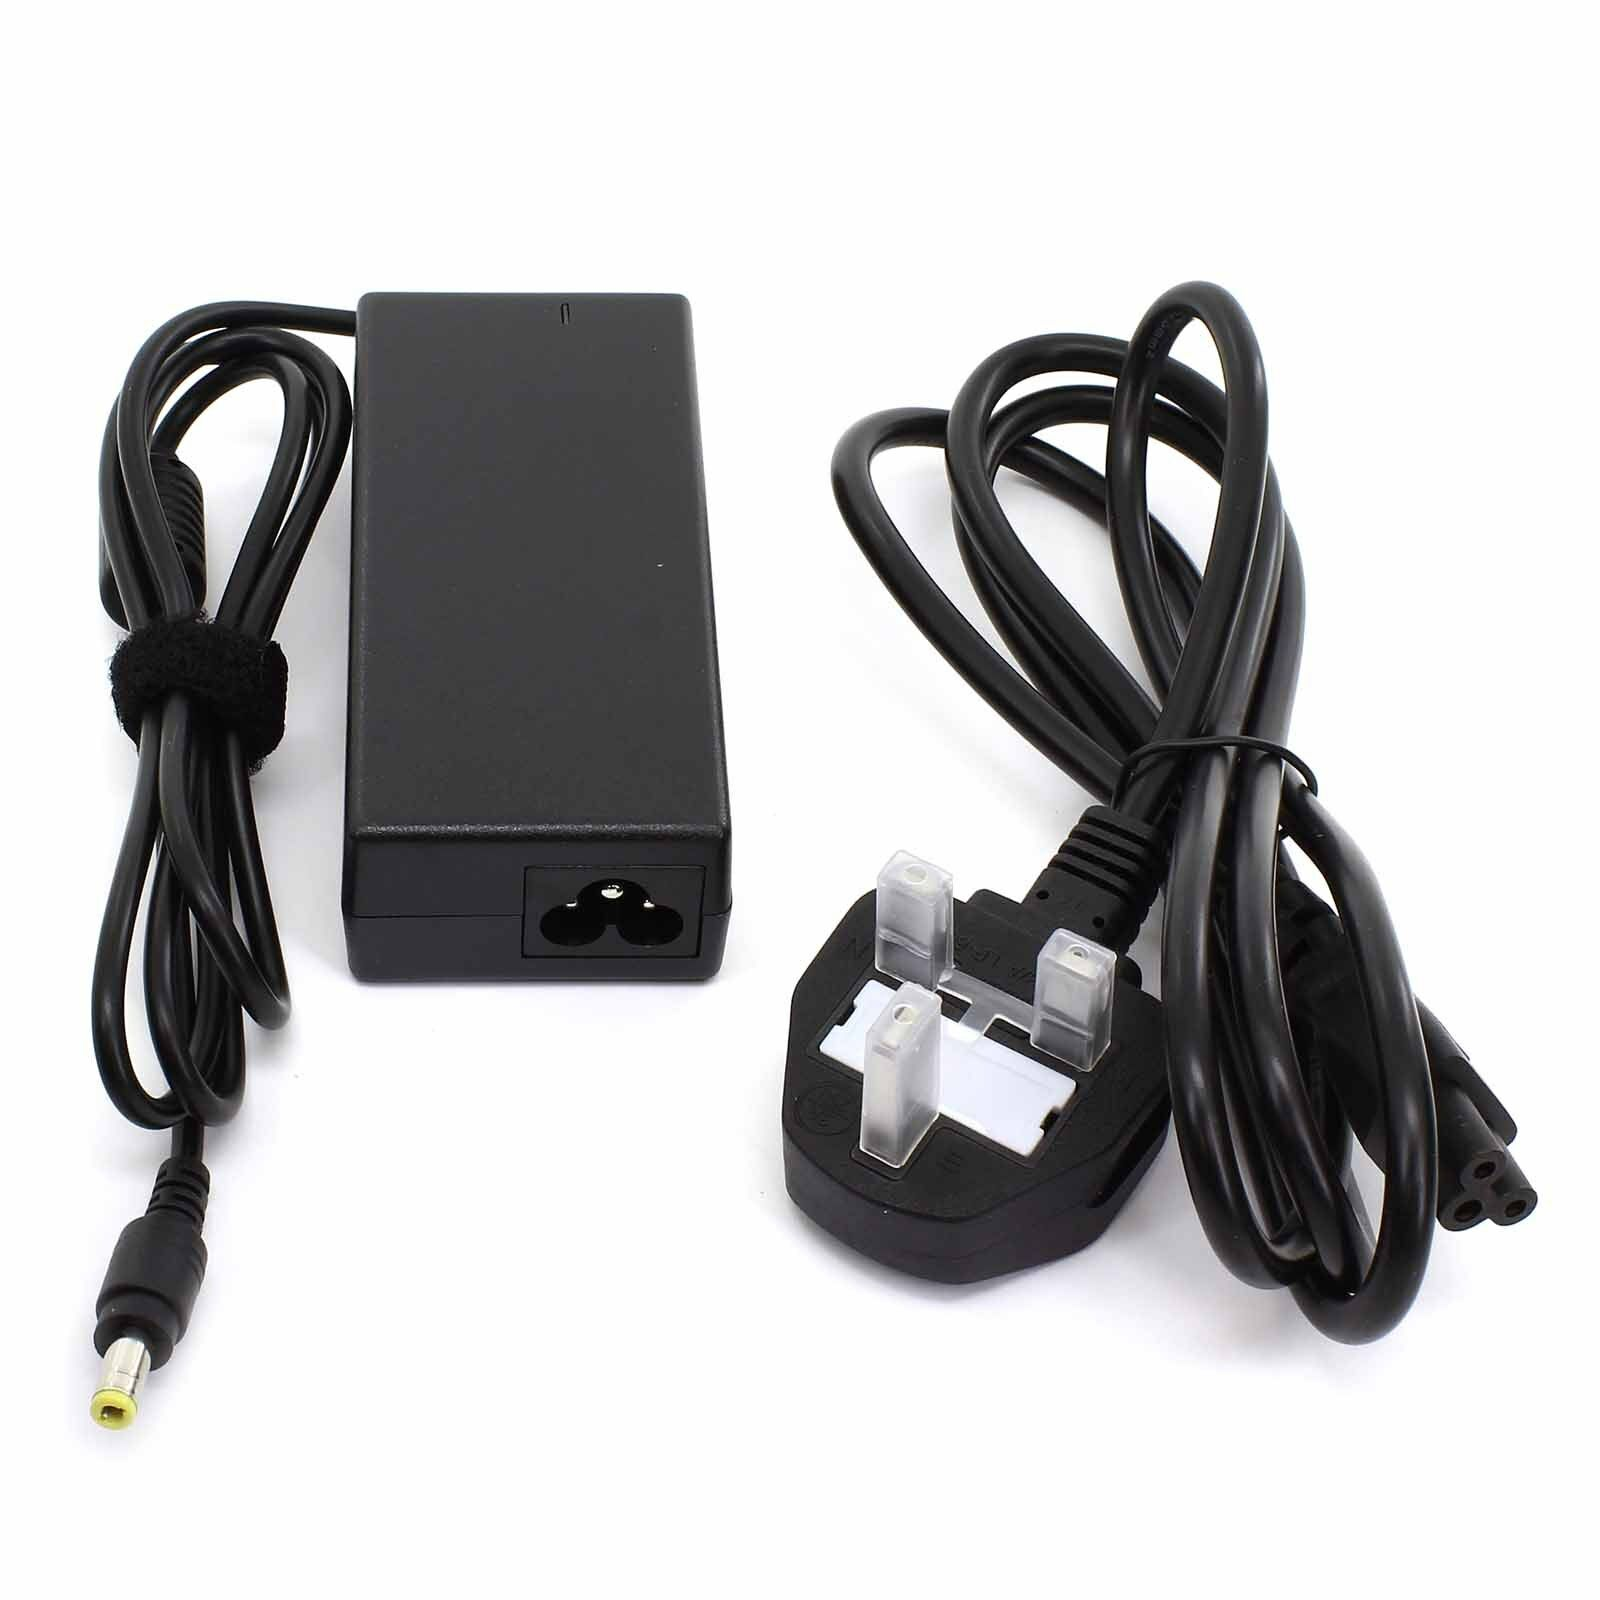 Goodmans LD1945WD 12V mains Power Supply Adapter quality charger UK